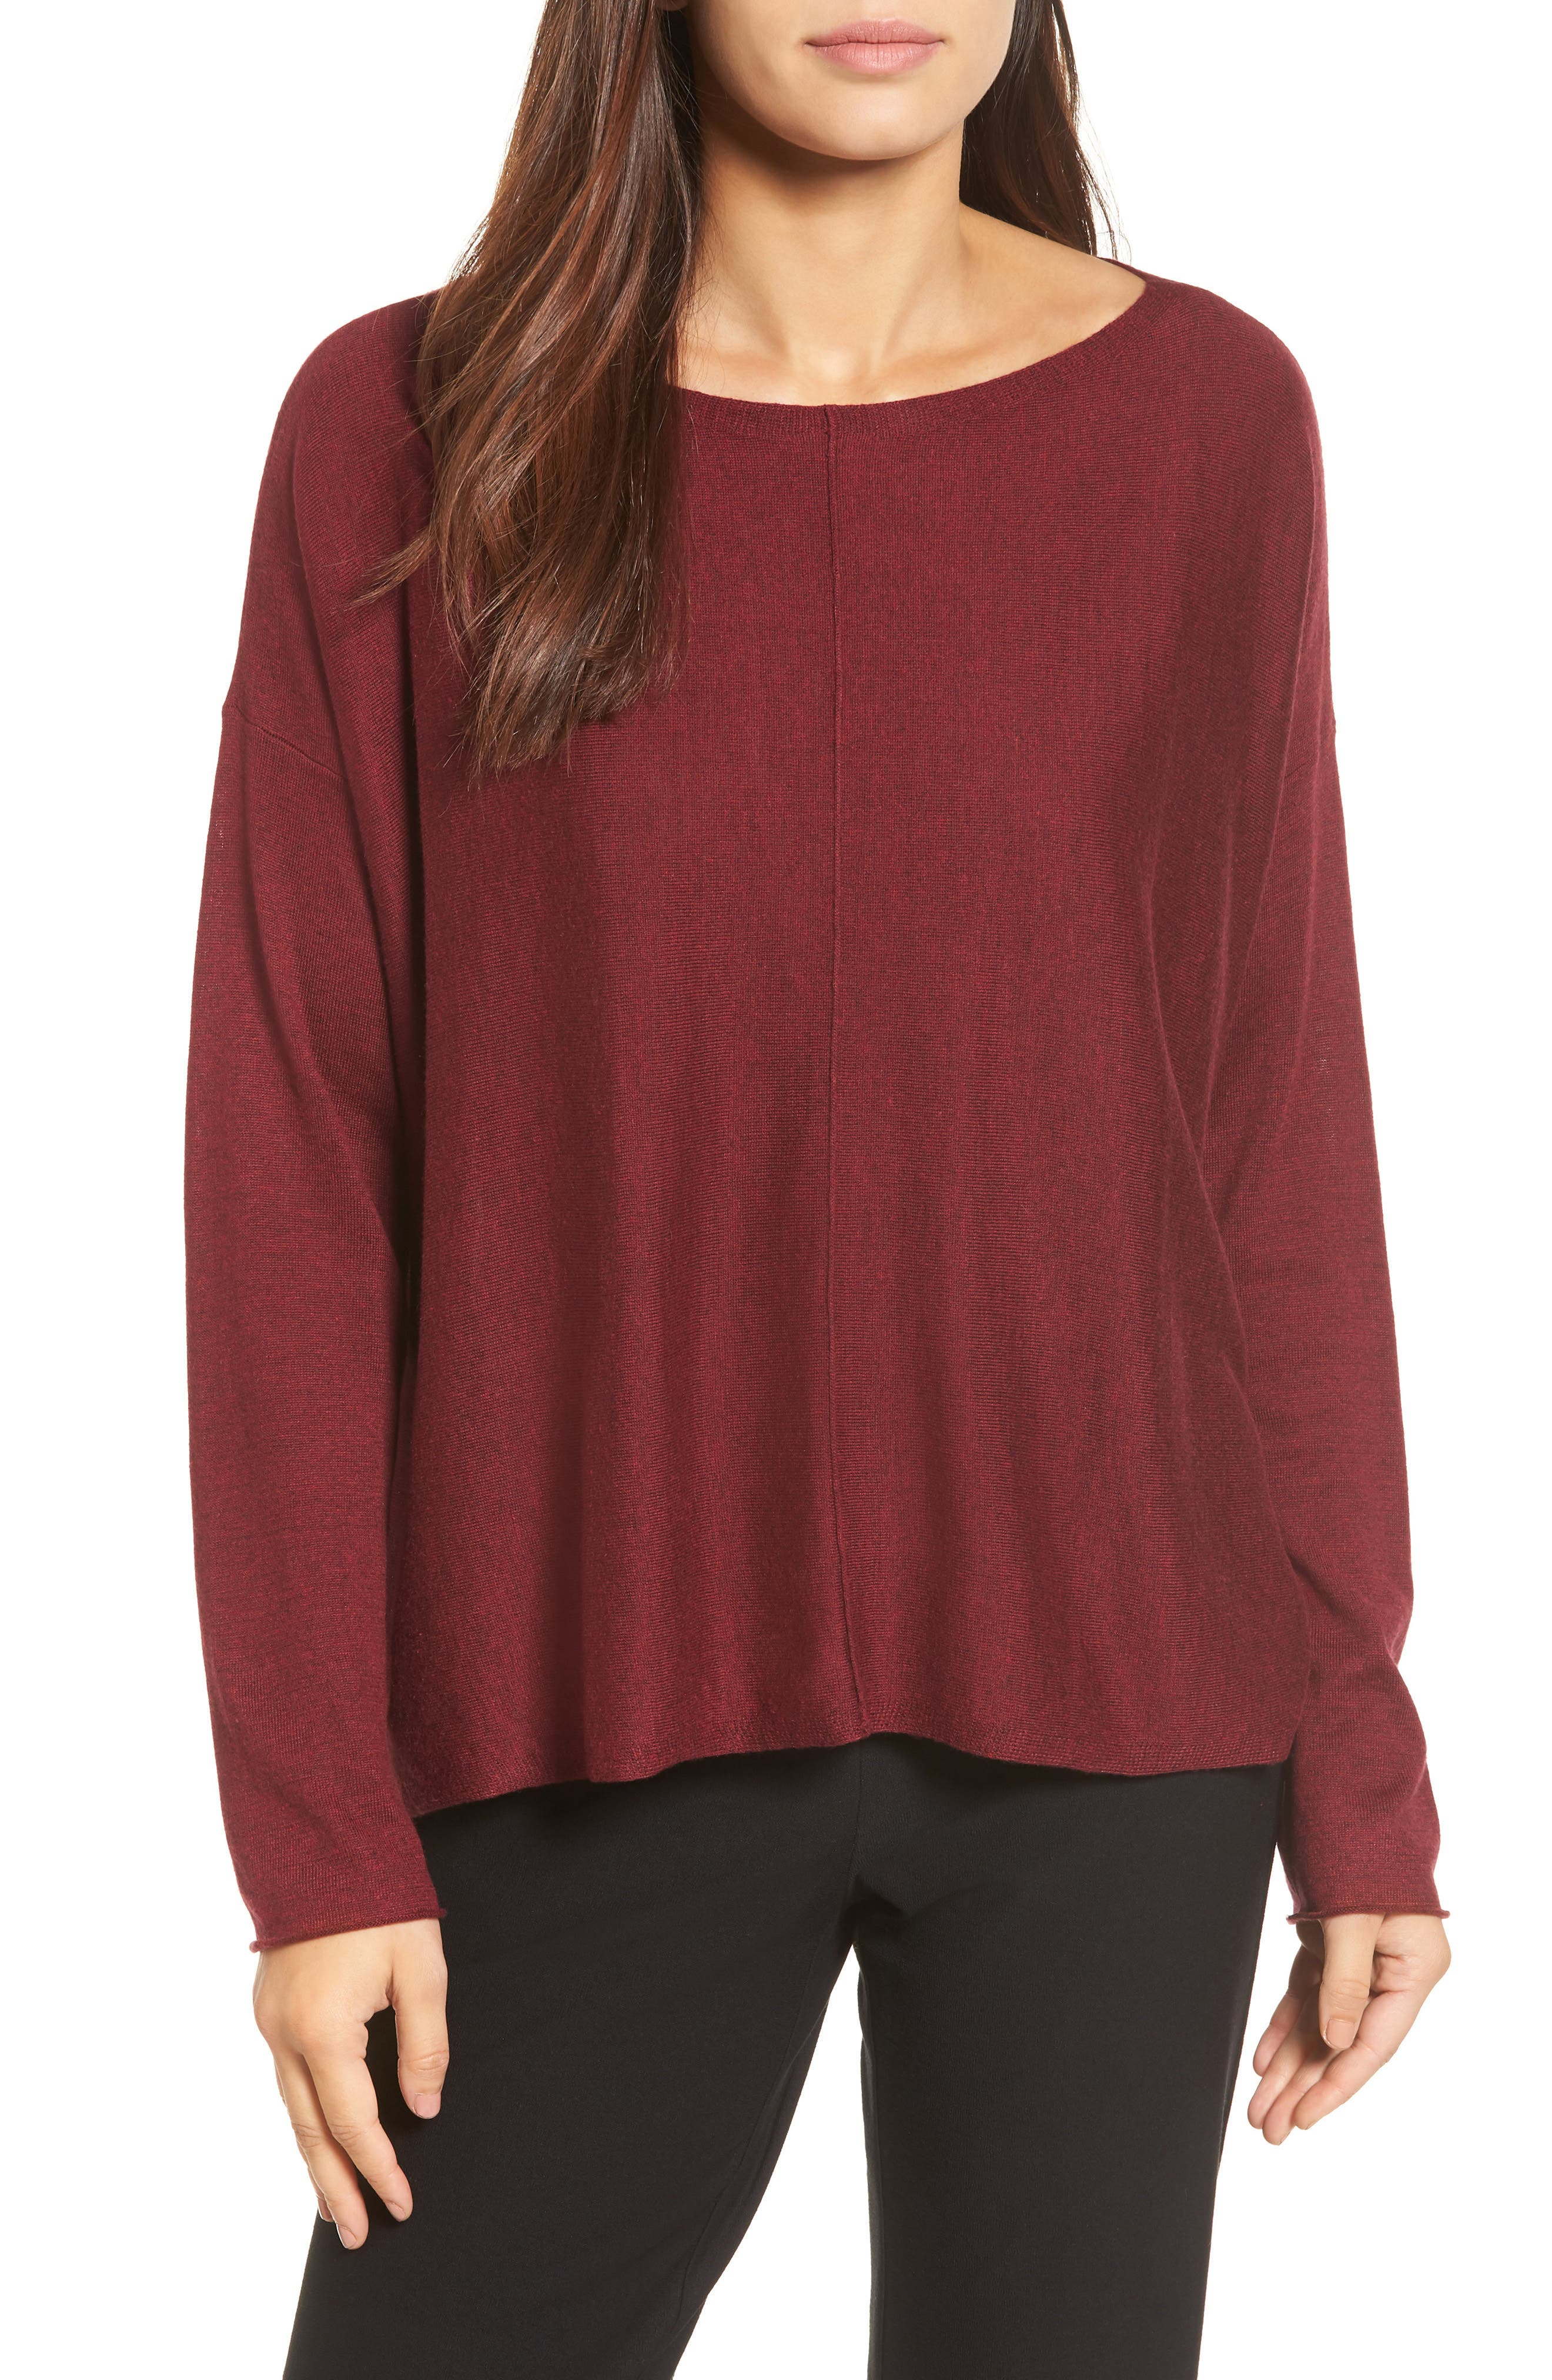 Tencel<sup>®</sup> Lyocell Blend High/Low Sweater,                         Main,                         color, Claret